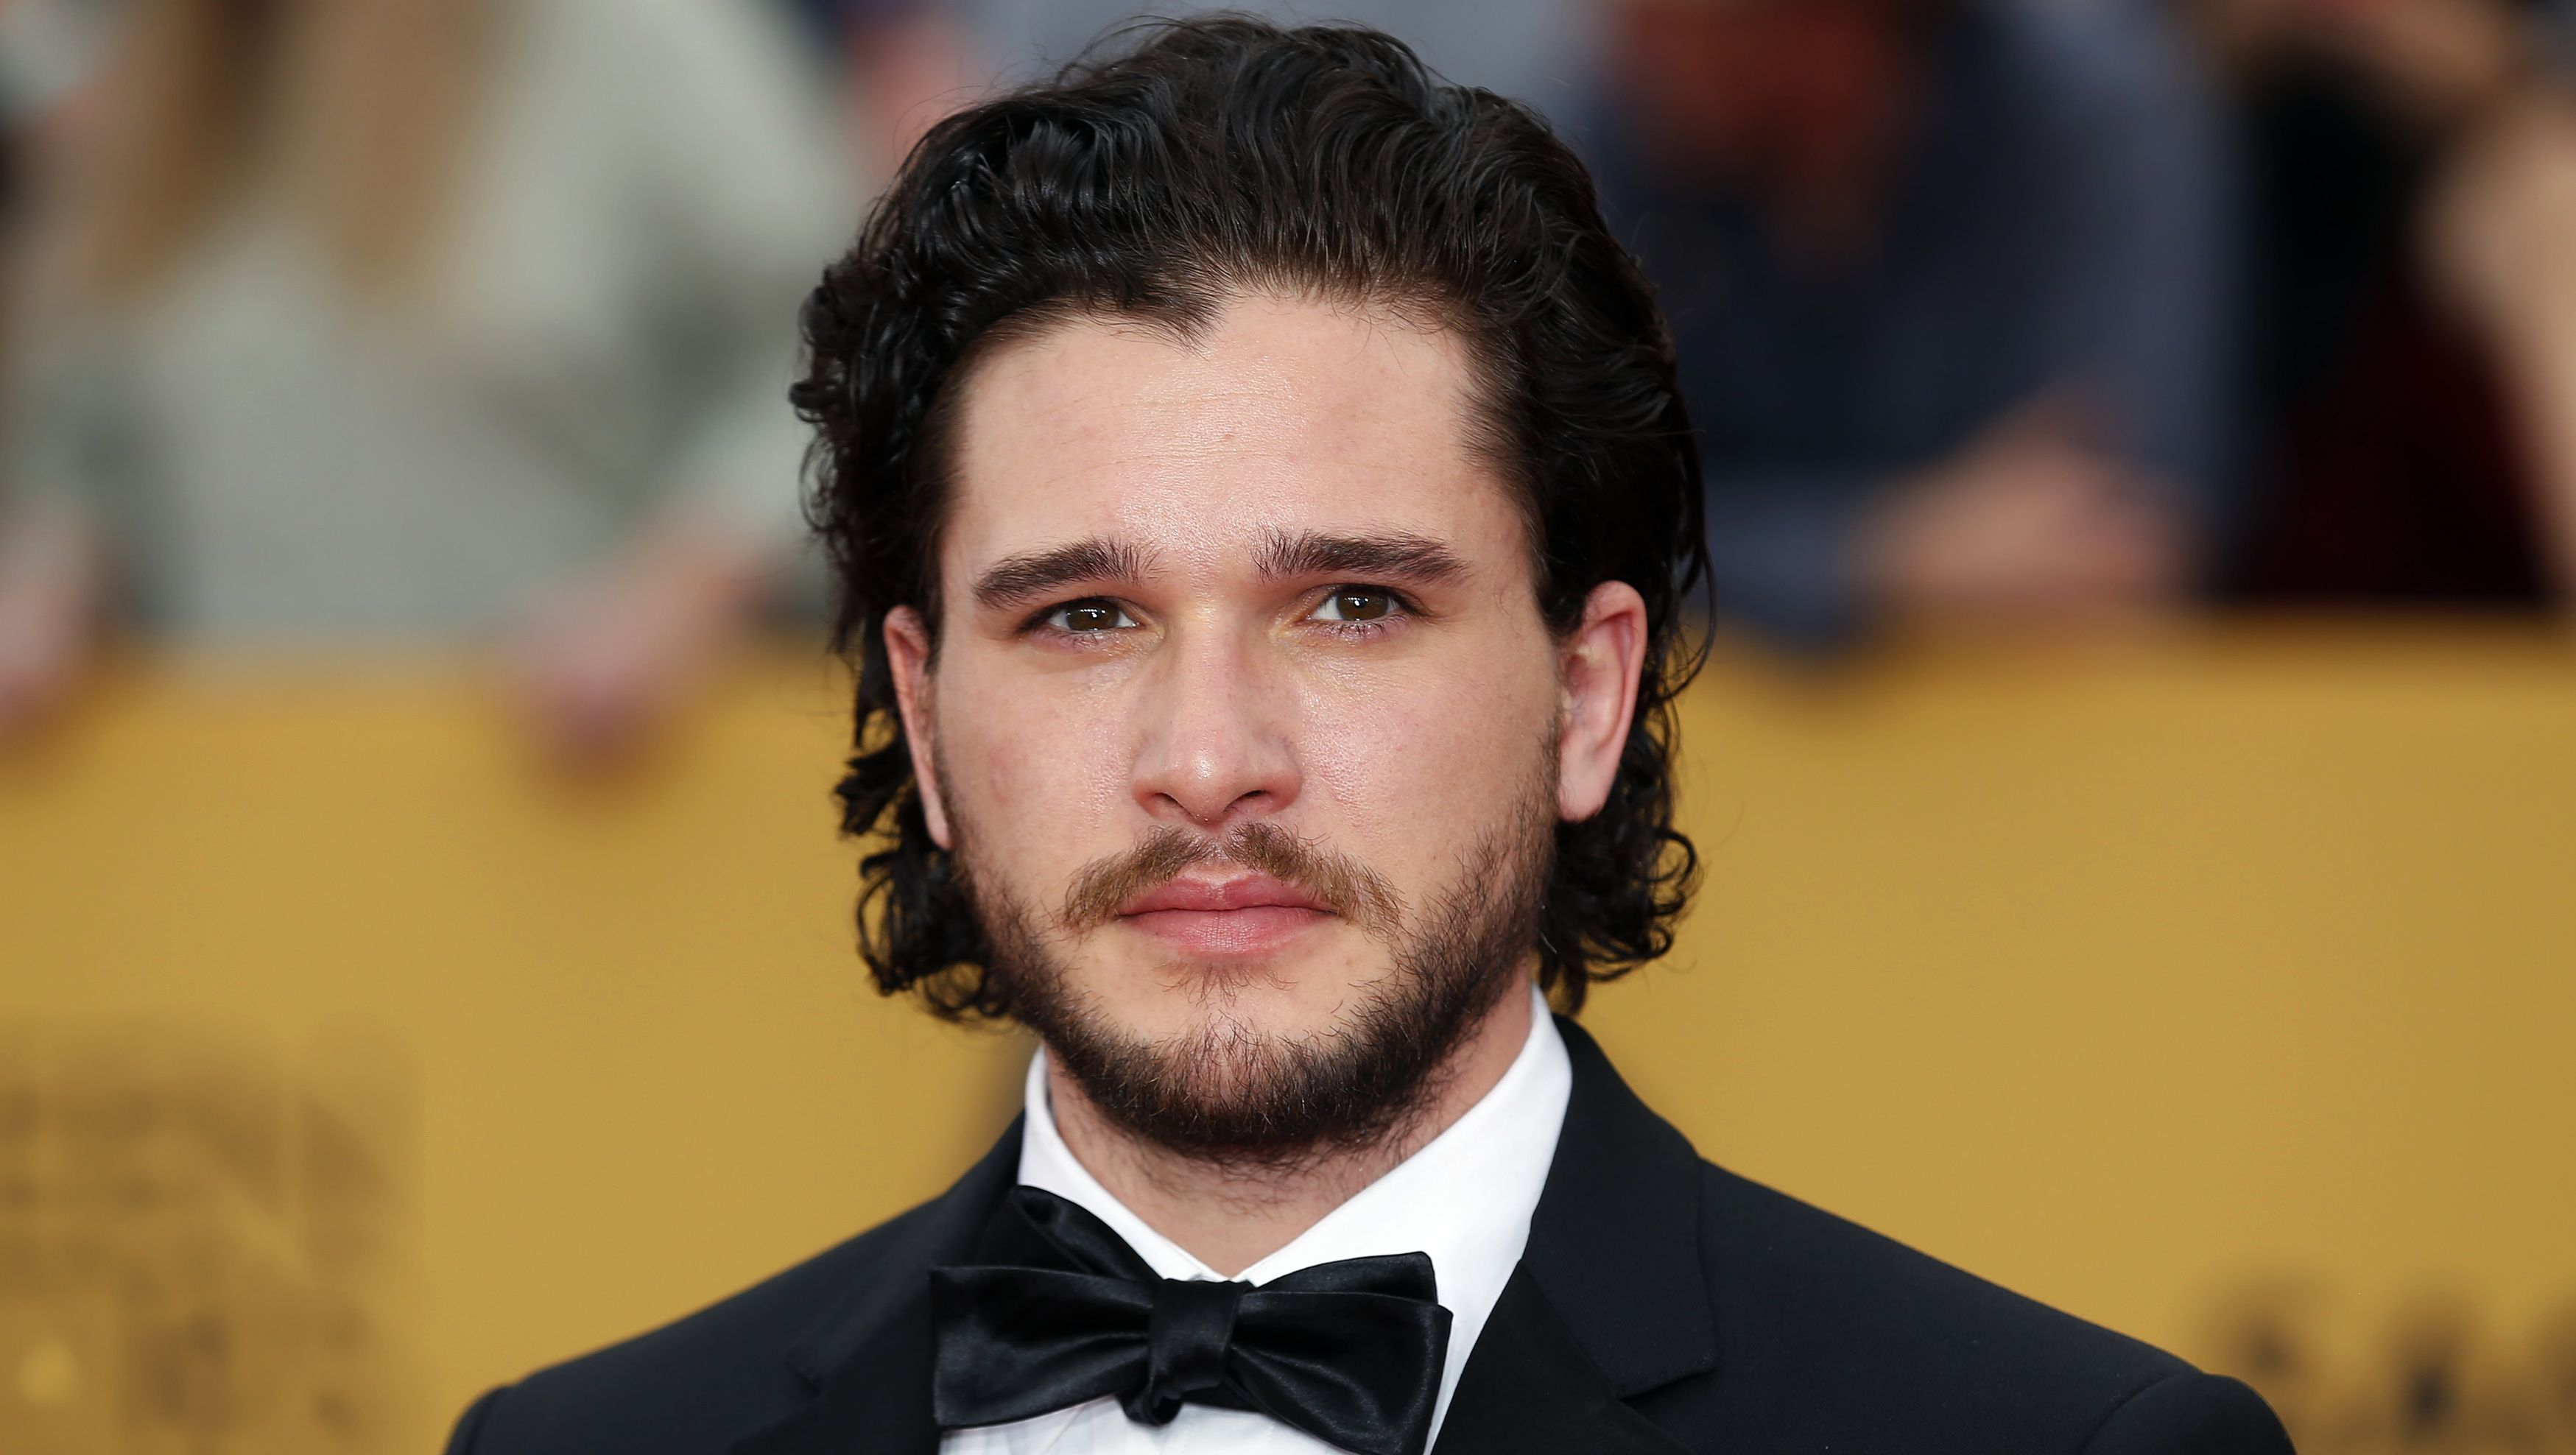 All You Need To Know About The Most Loved 'king In The North' : Kit Harington